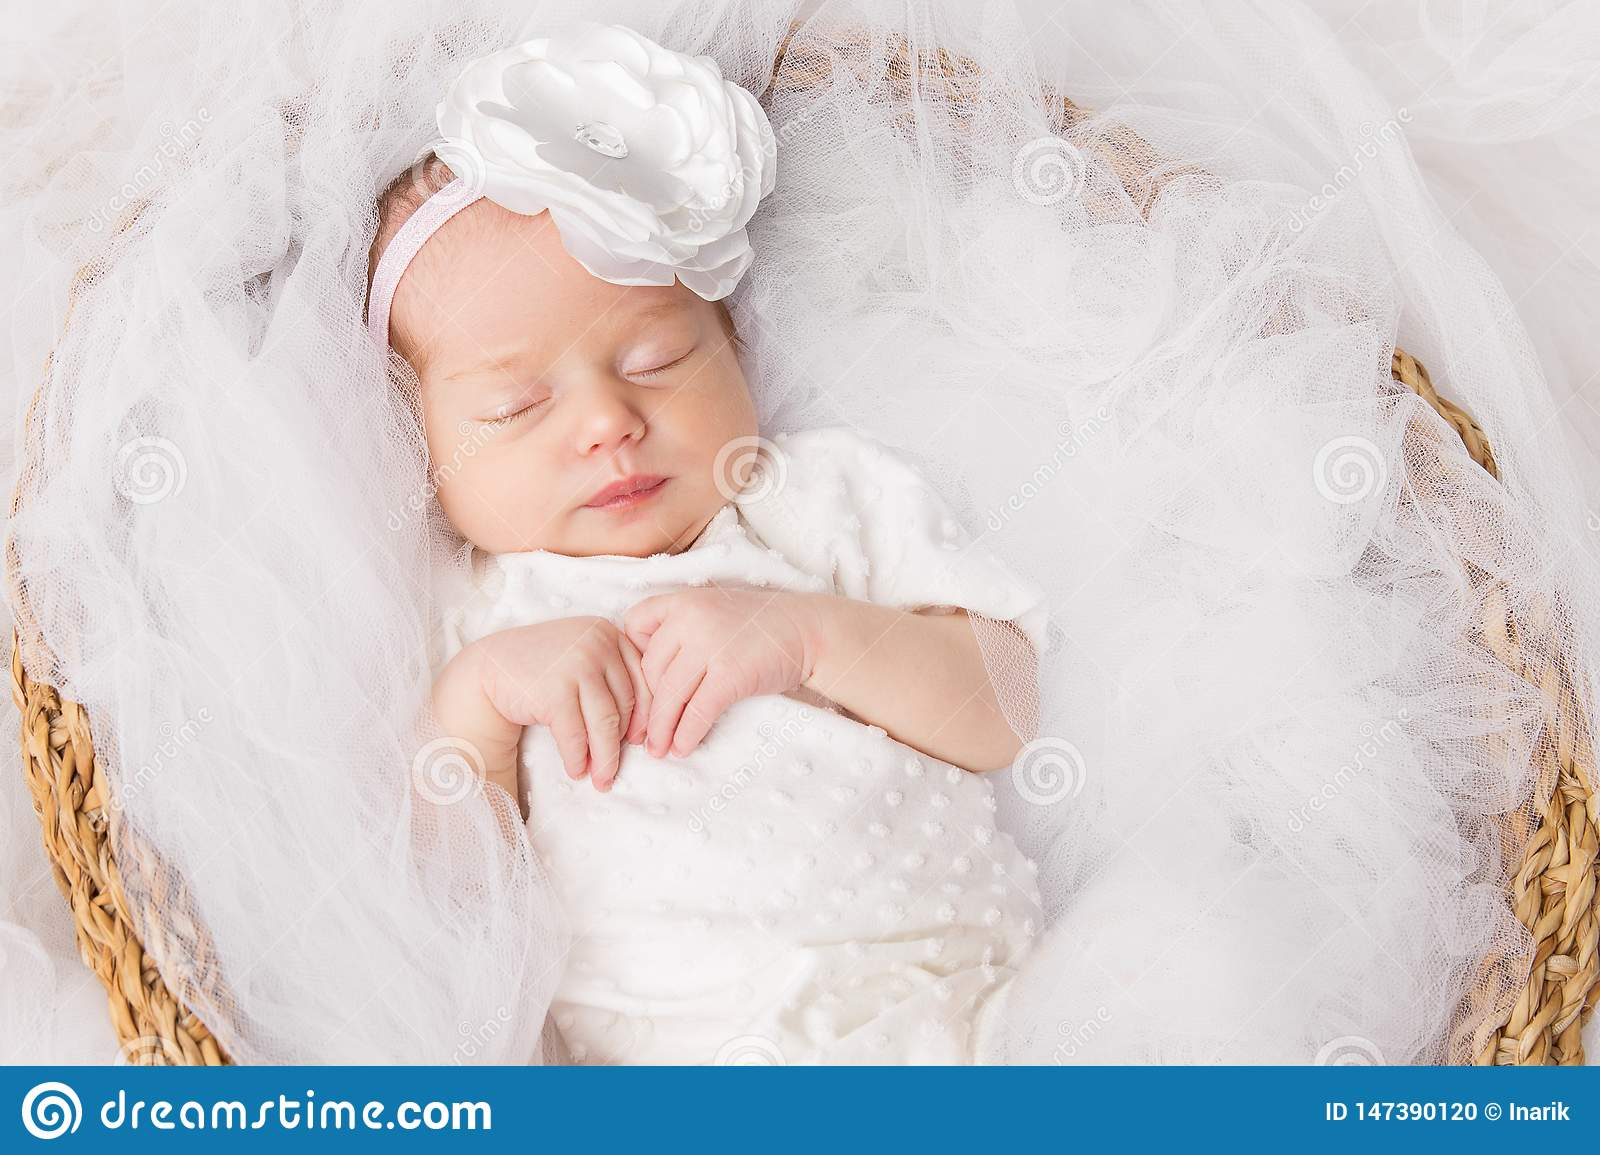 Newborn Baby Girl Sleeping New Born Kid In White Beautiful Infant Portrait Stock Photo Image Of Concept Cute 147390120